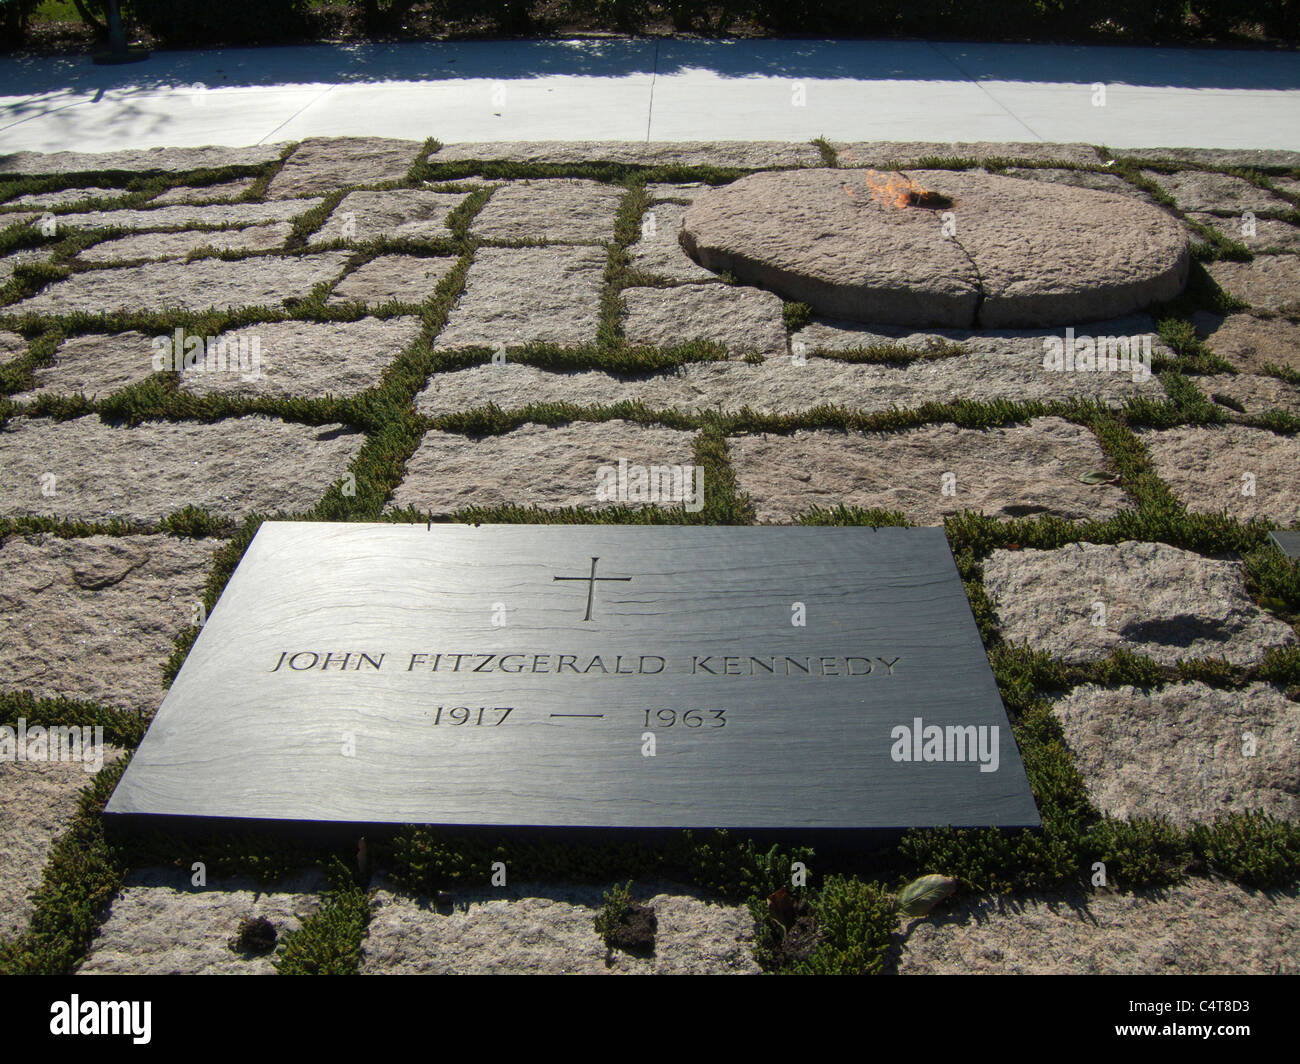 Washington Dc Arlington Friedhof Grab Von John Fitzgerald Kennedy